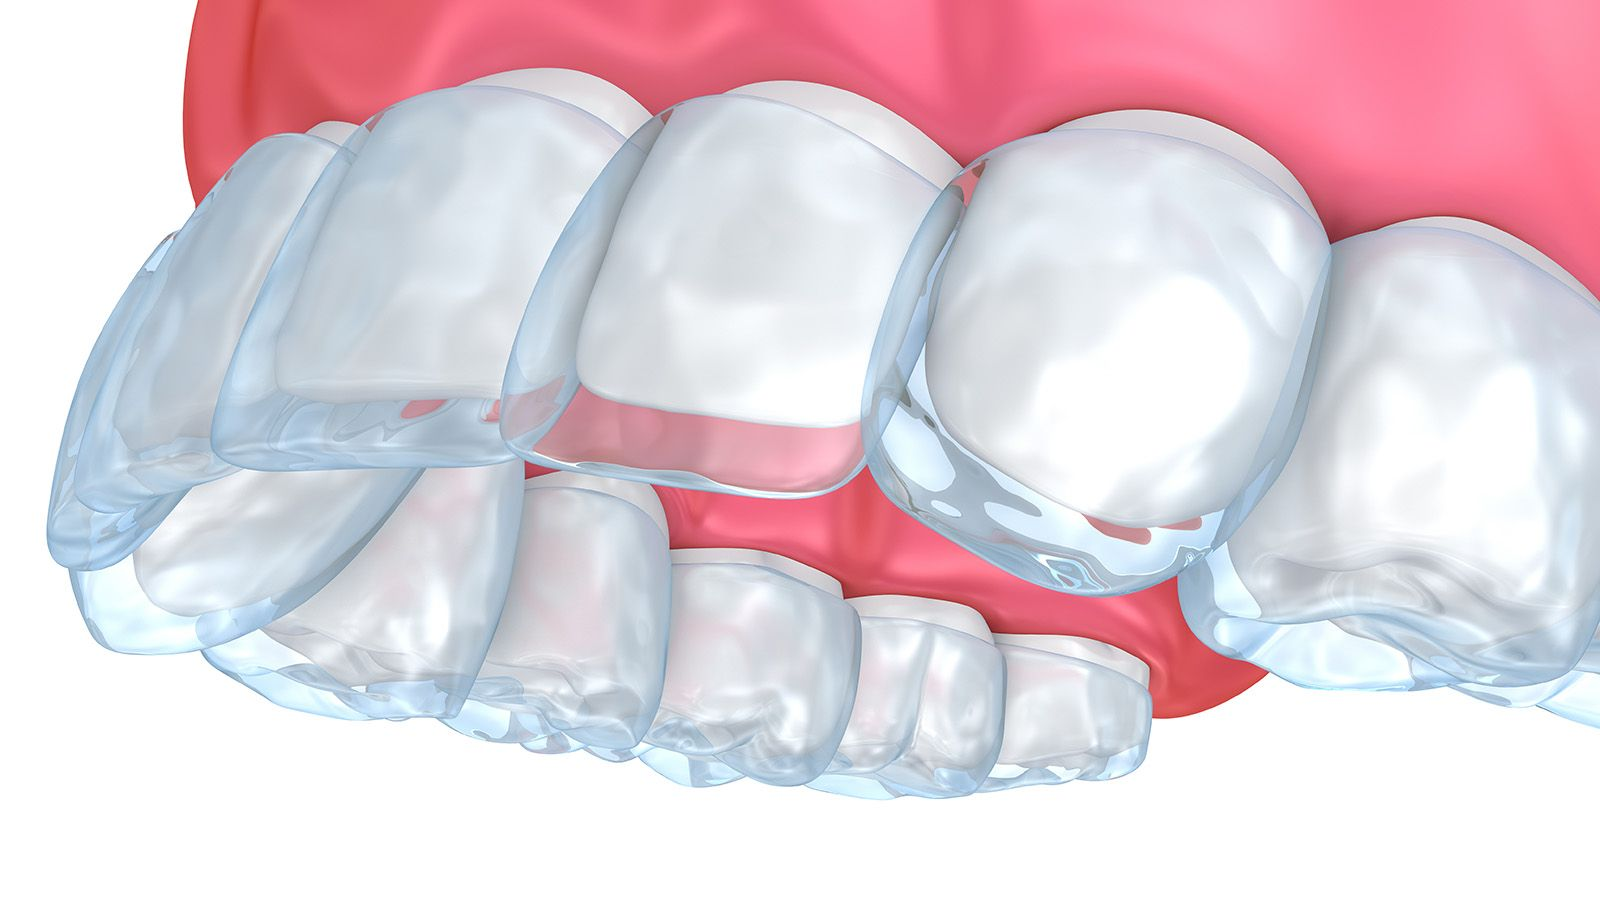 An illustration of Invisalign® aligner trays